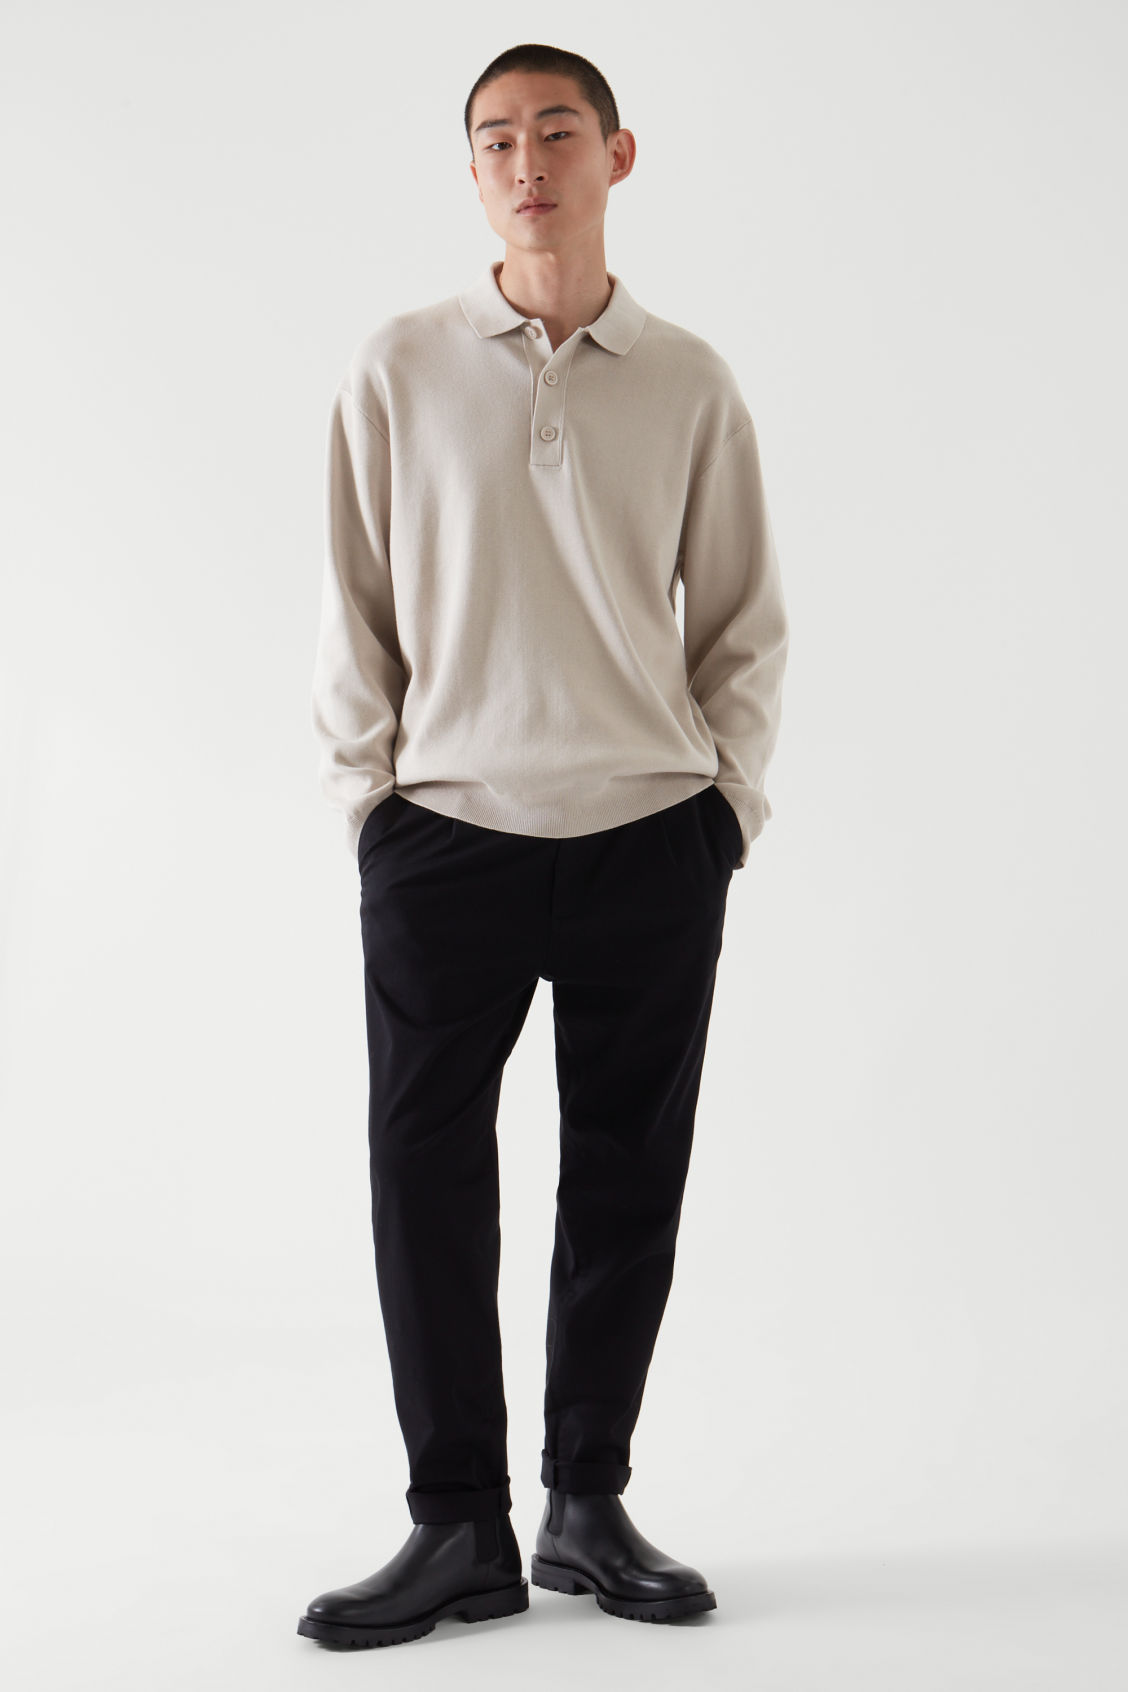 COS RELAXED-FIT KNITTED POLO SHIRT,LIGHT BEIGE